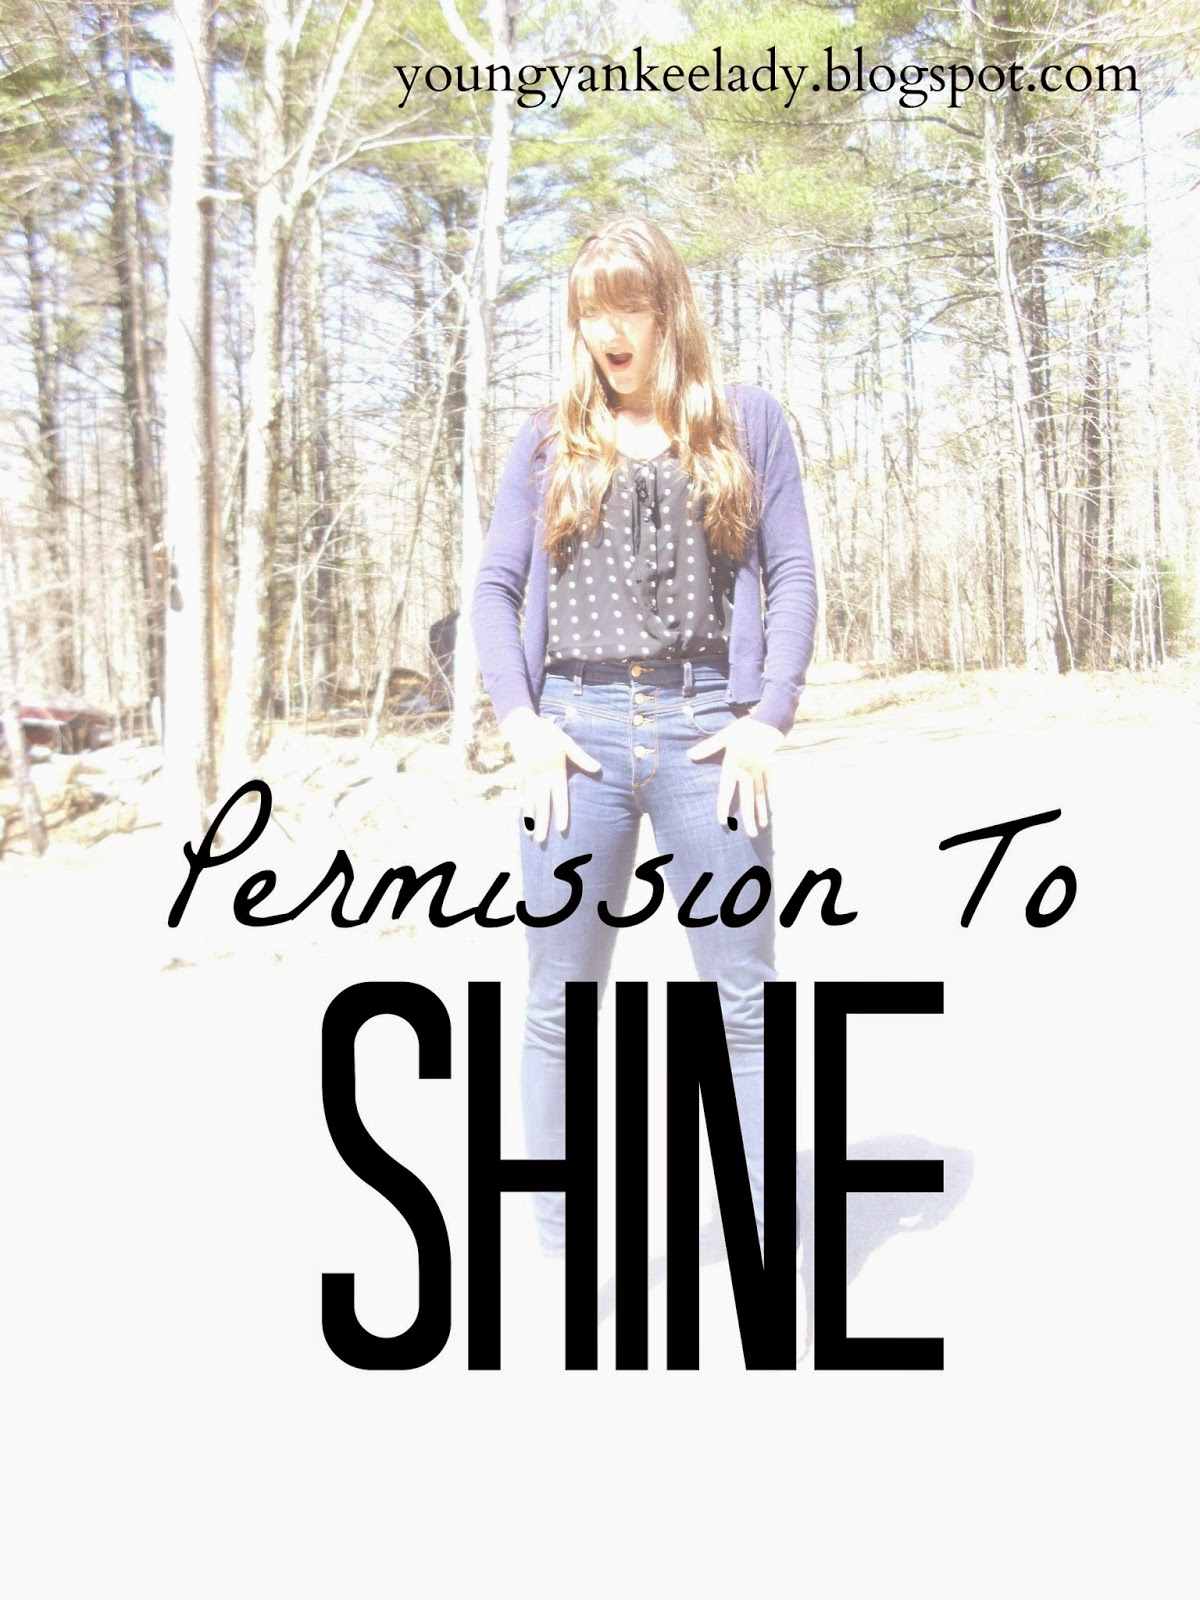 permission to shine #permissiontoshine @Young Yankee Lady